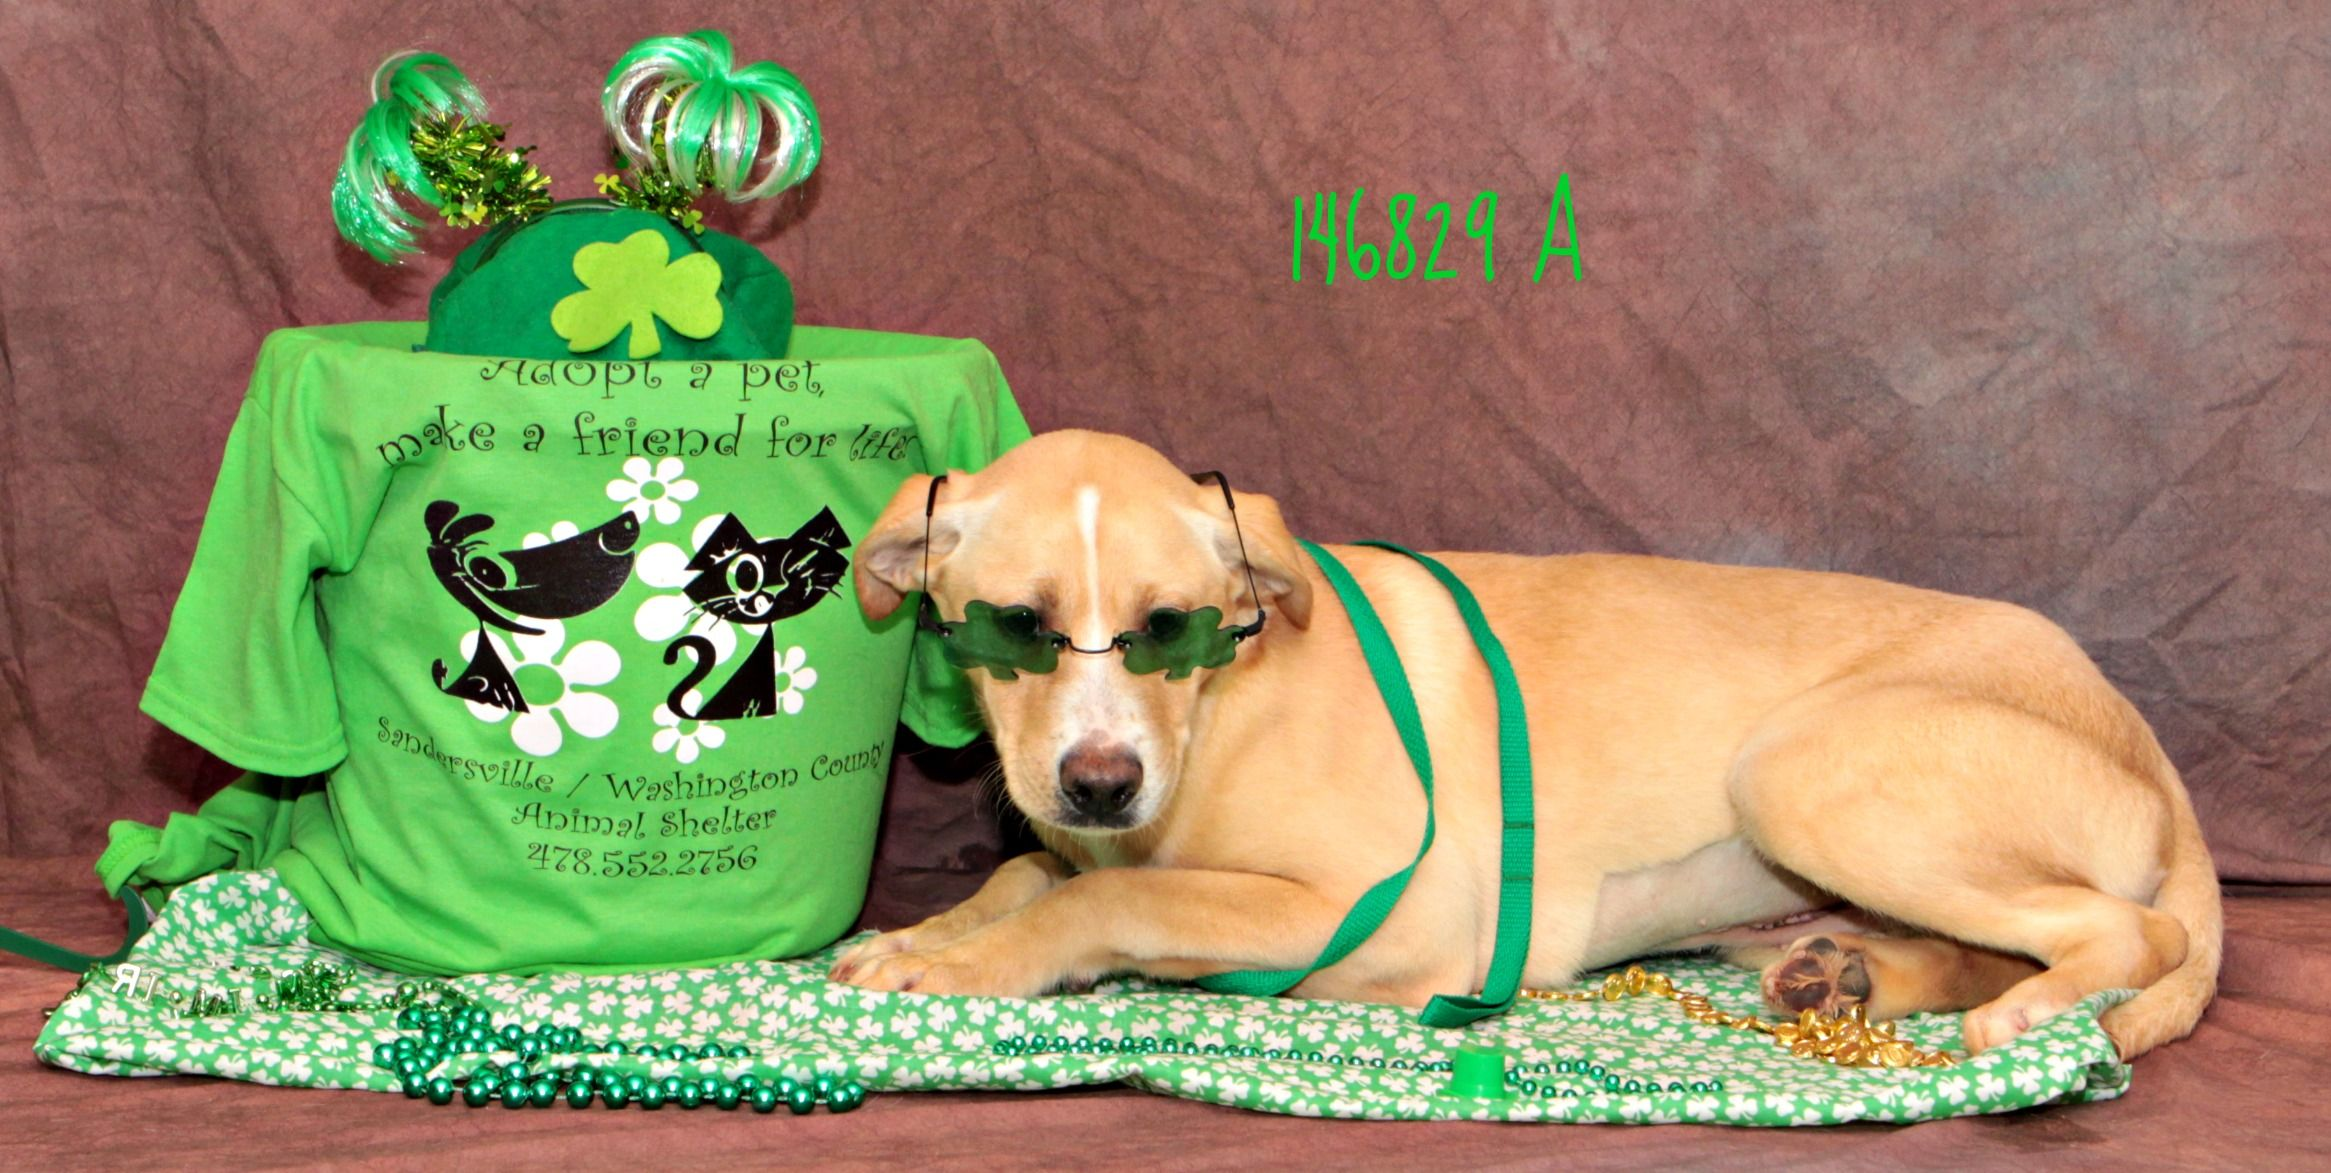 Emerald ADOPT ME TODAY! FOR MORE INFORMATION PLEASE VISIT